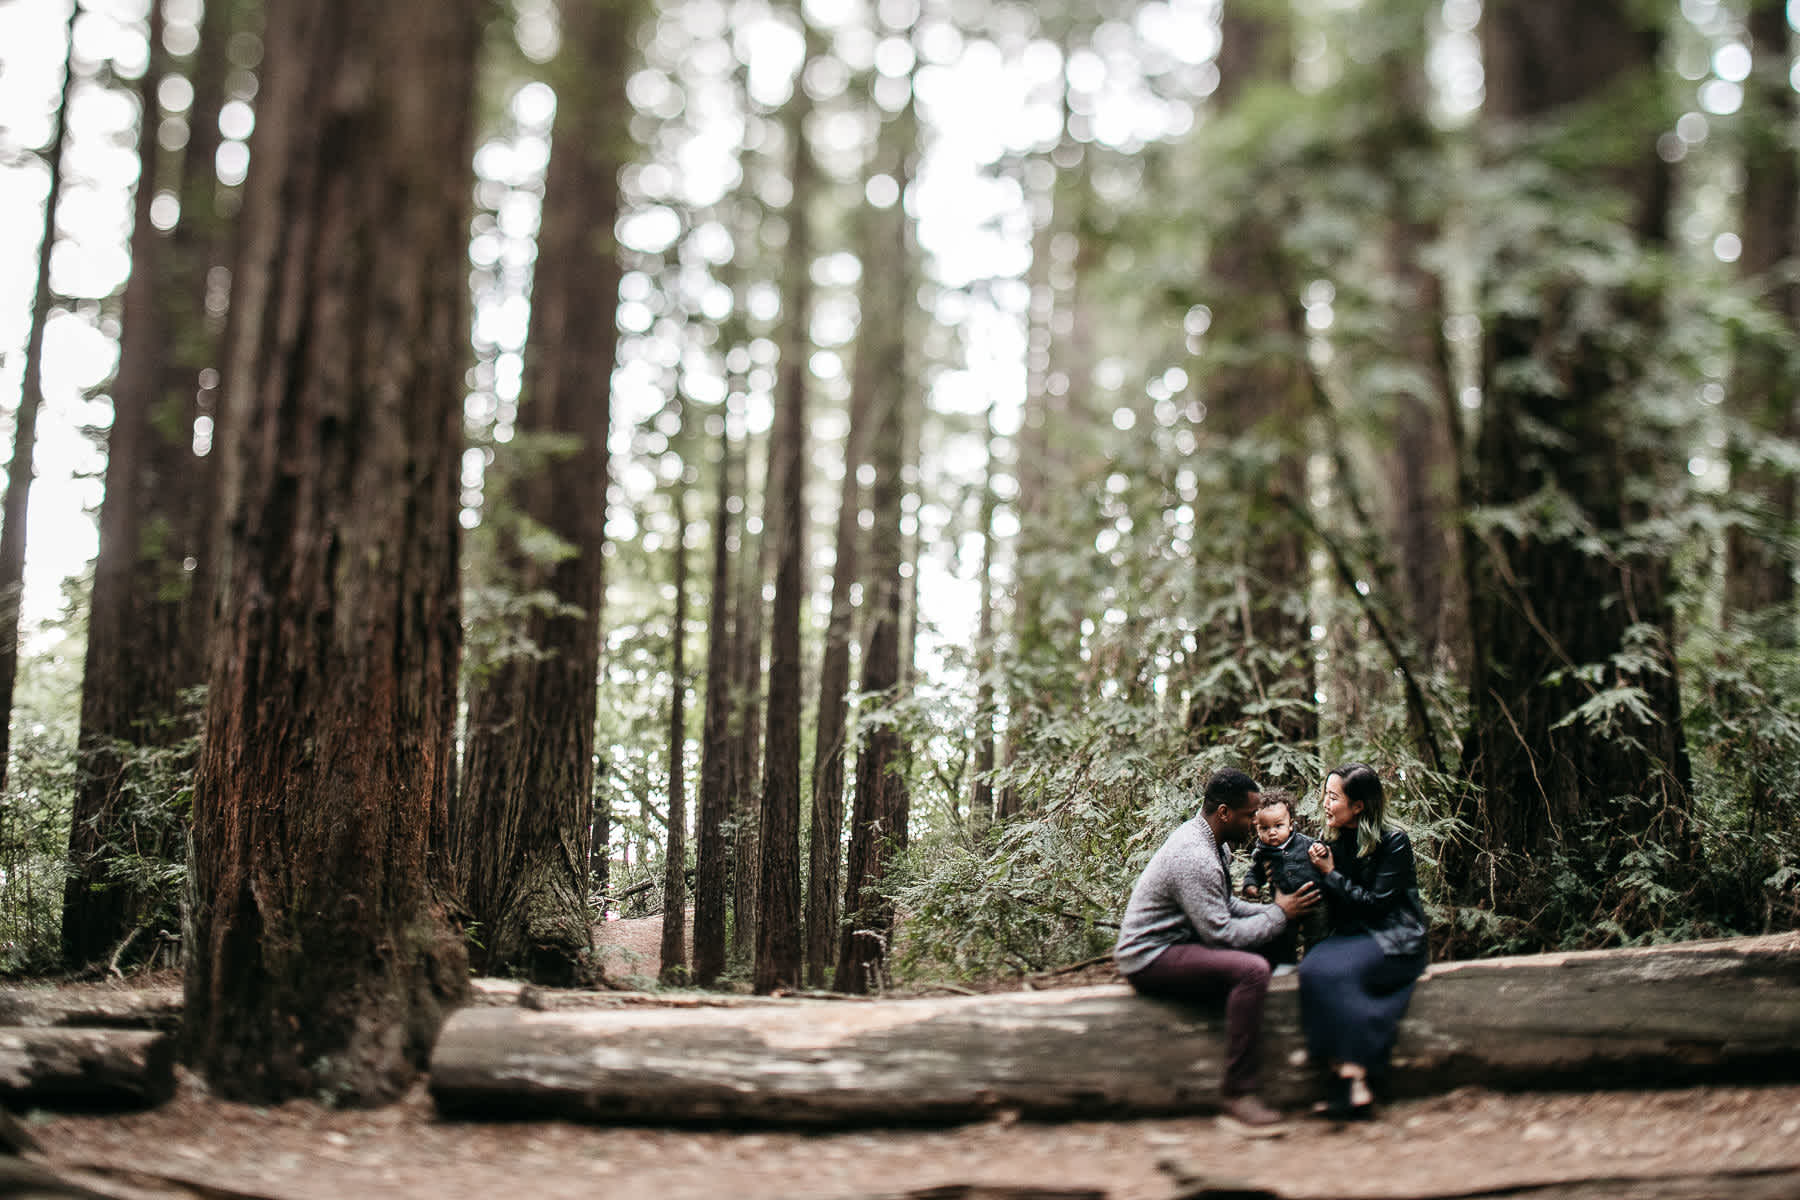 oakland-redwoods-urban-family-session-20